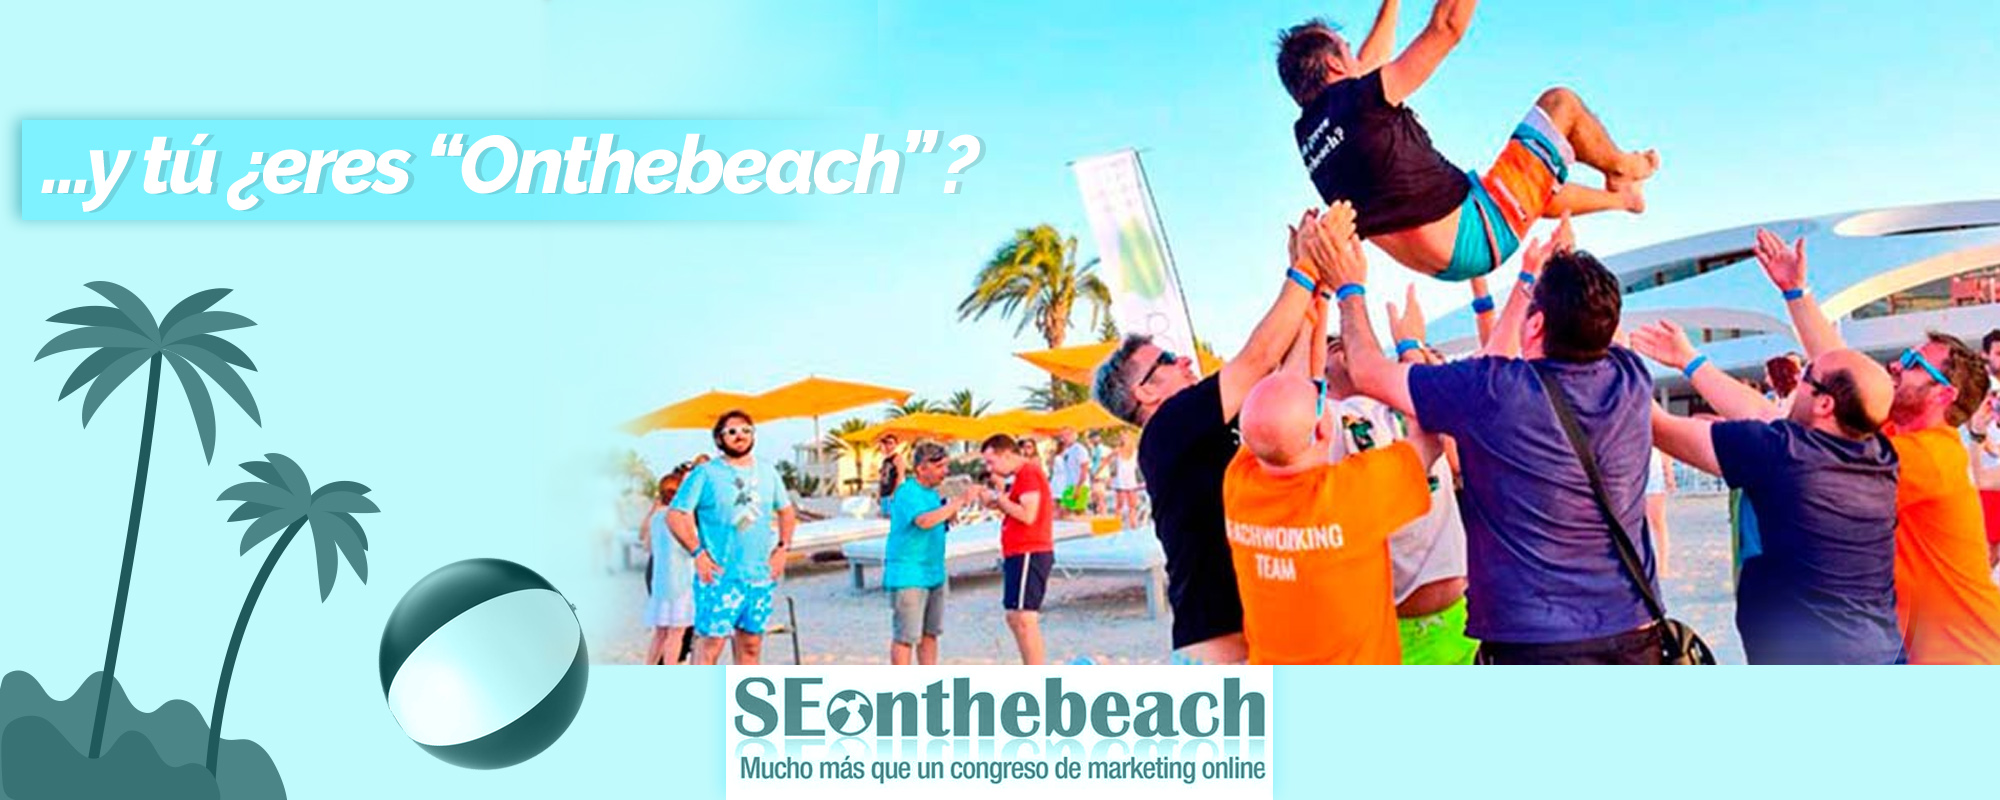 BANNER SEO ON THE BEACH